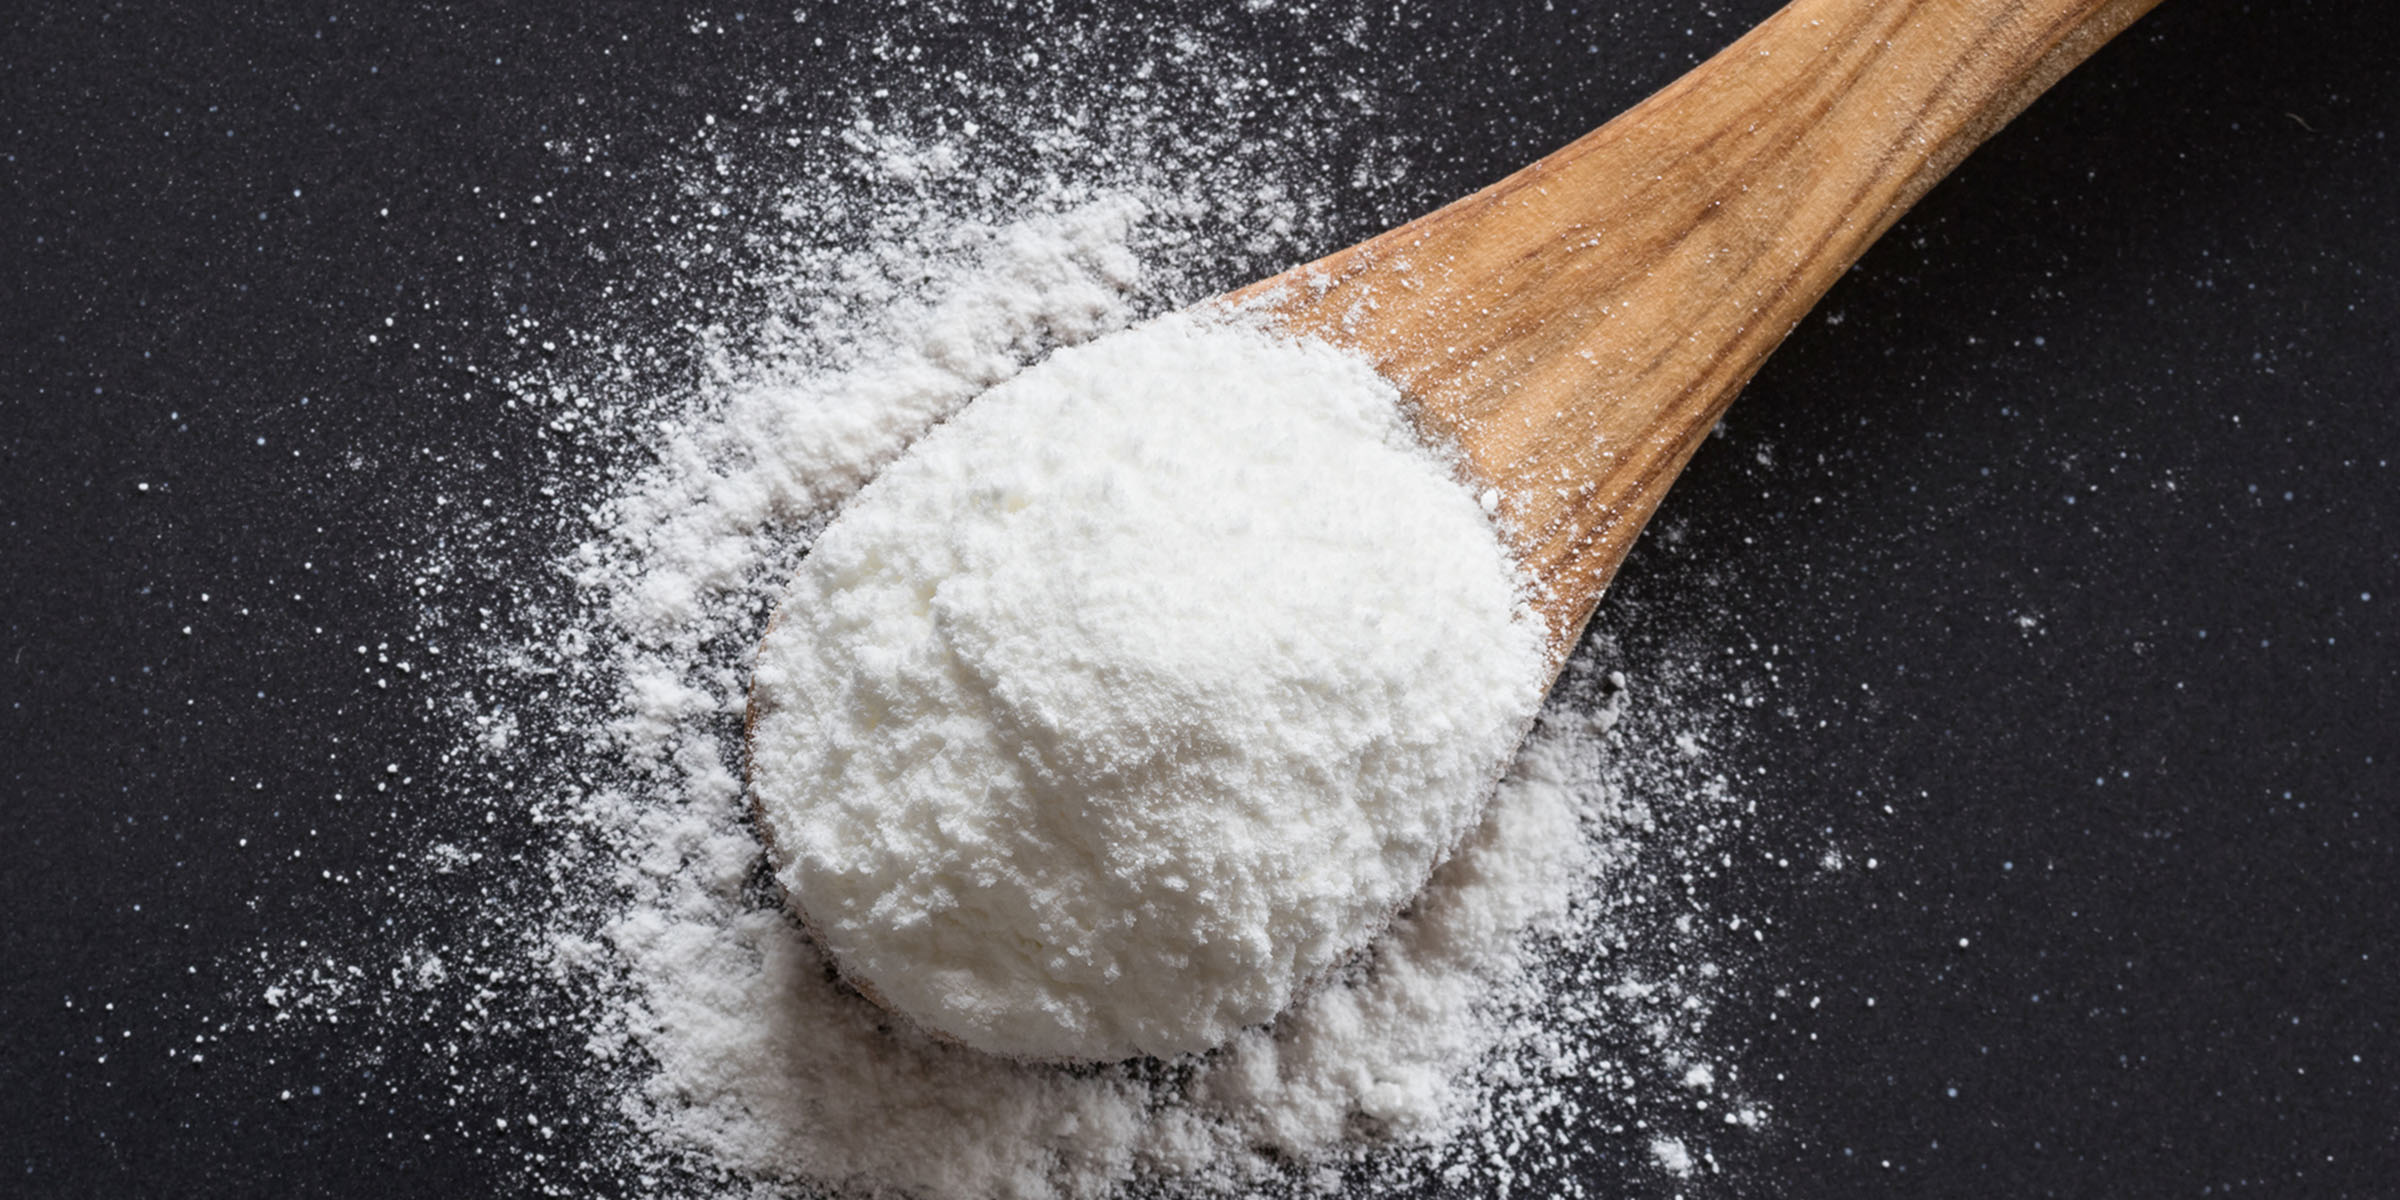 Baking soda vs. baking powder: What is the difference?